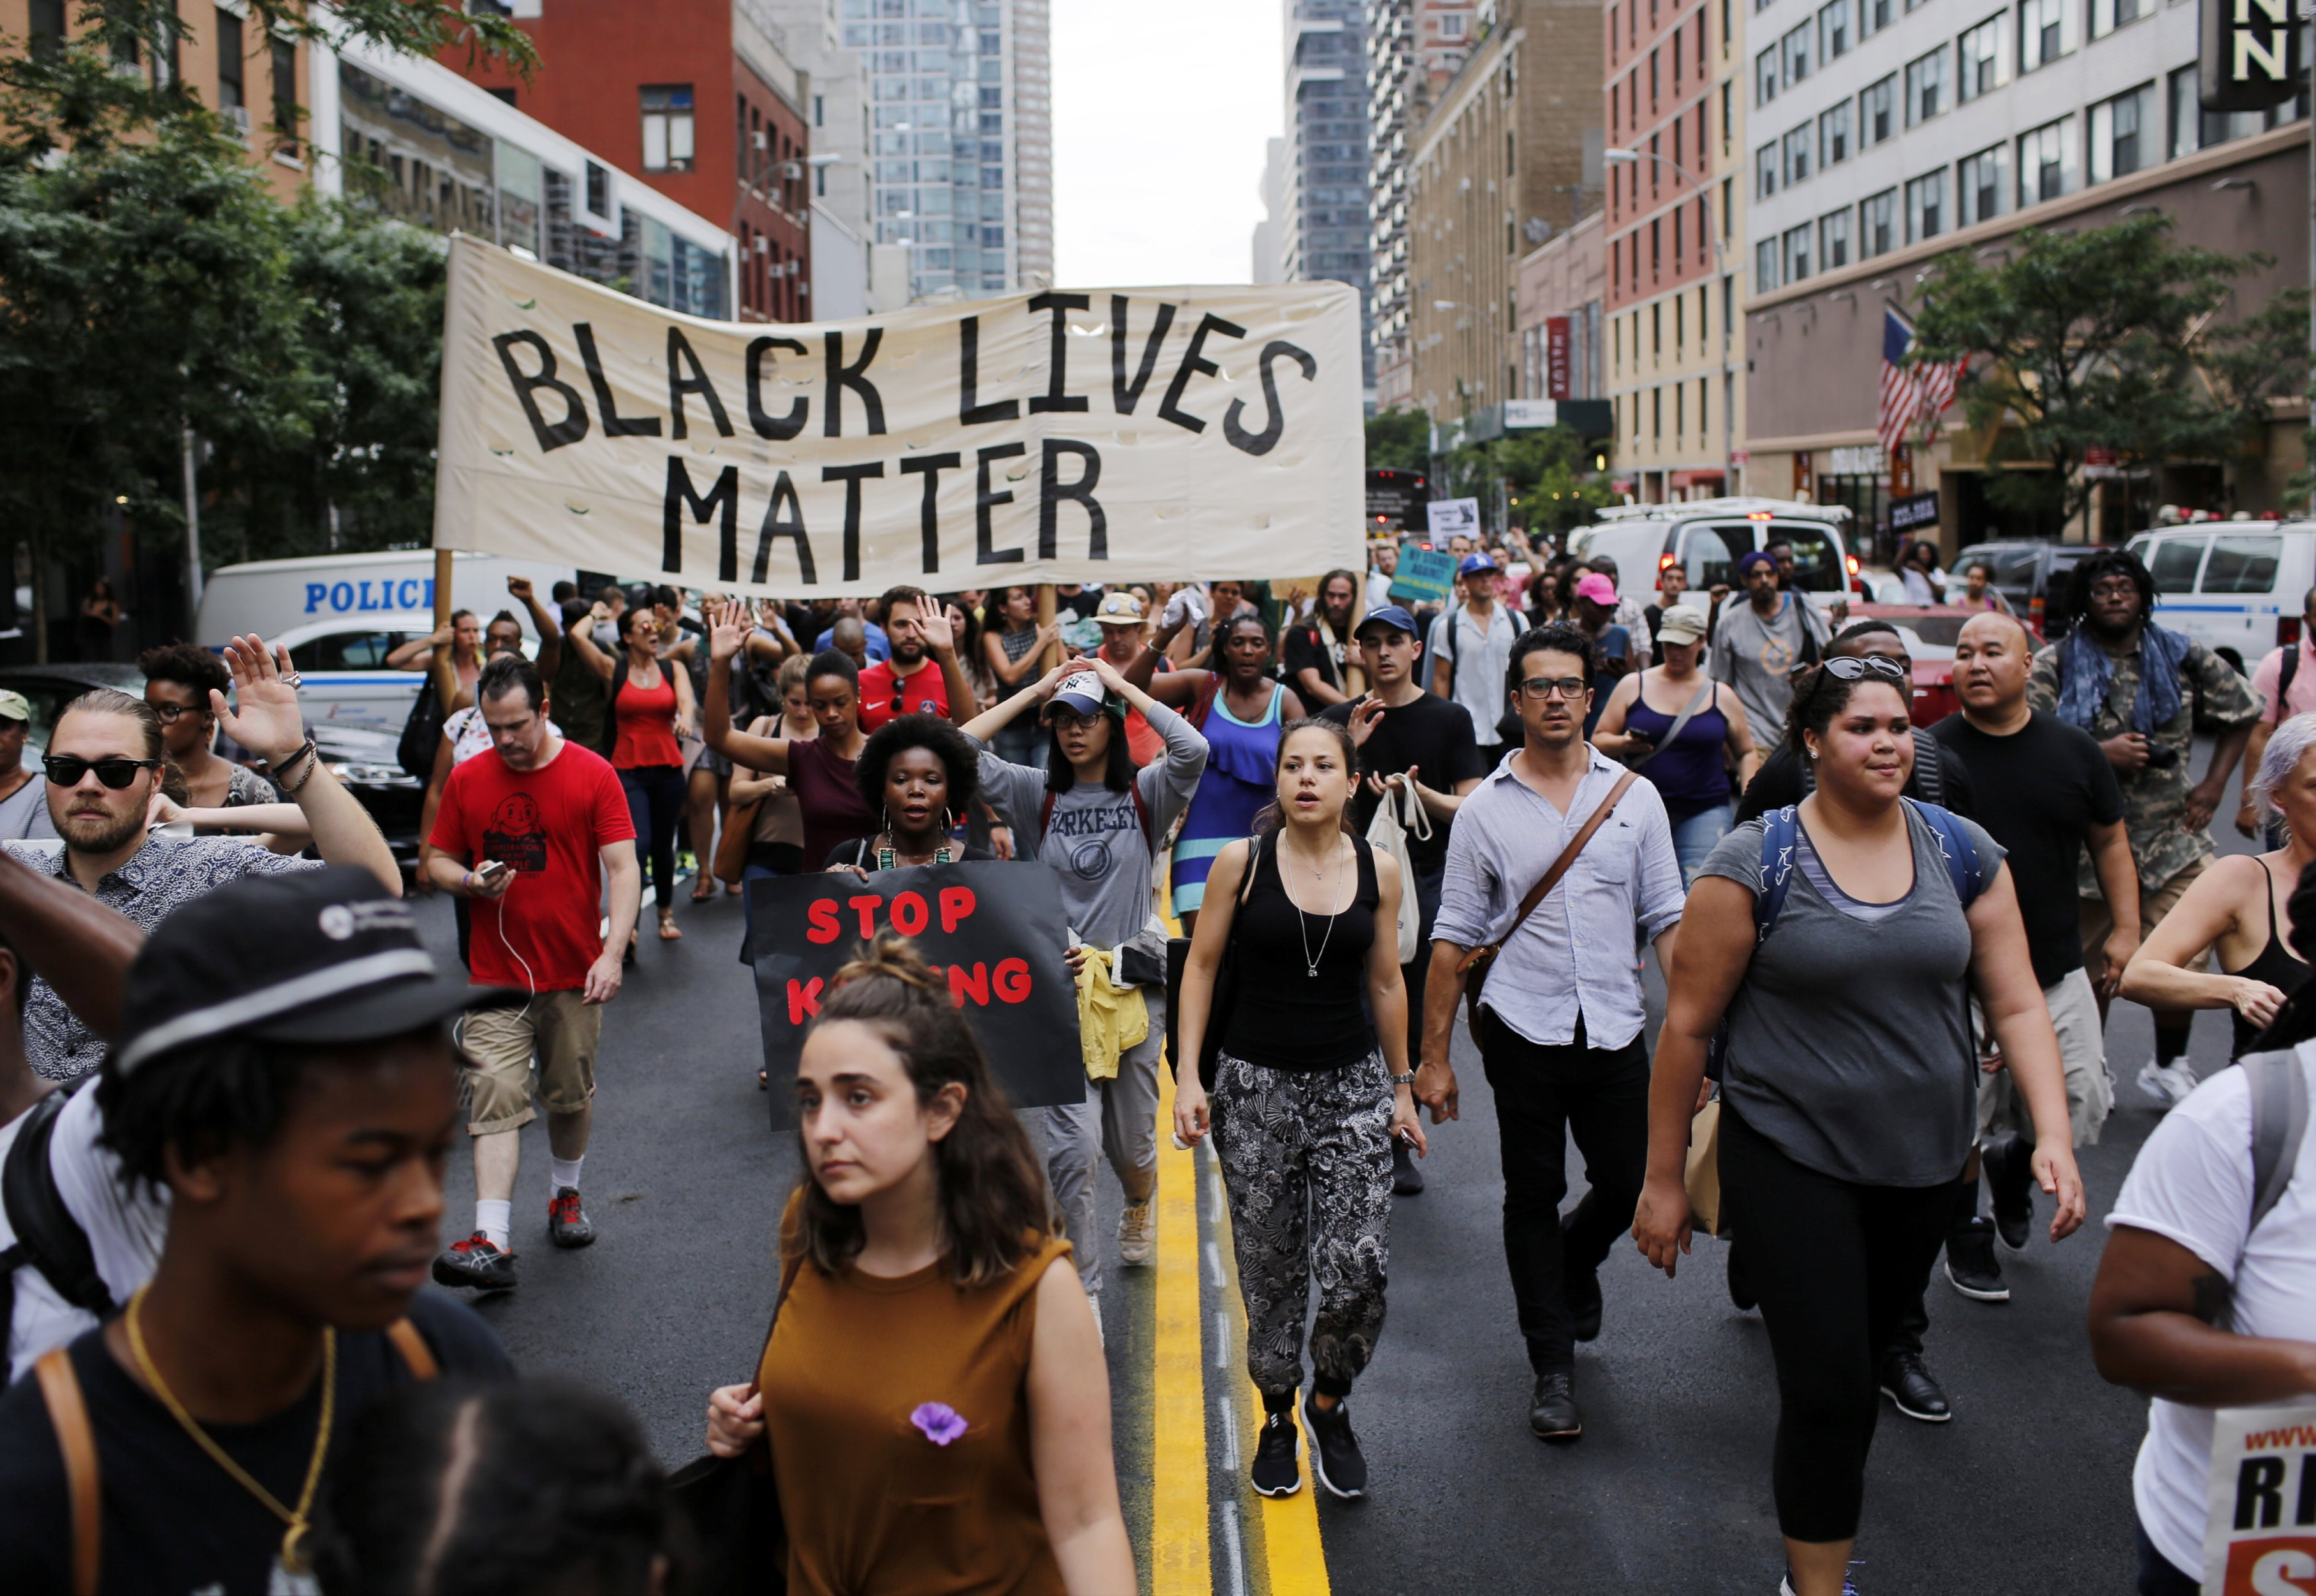 People take part in a protest for the killing of Alton Sterling and Philando Castile during a march along Manhattan's streets in New York, on July 7, 2016.